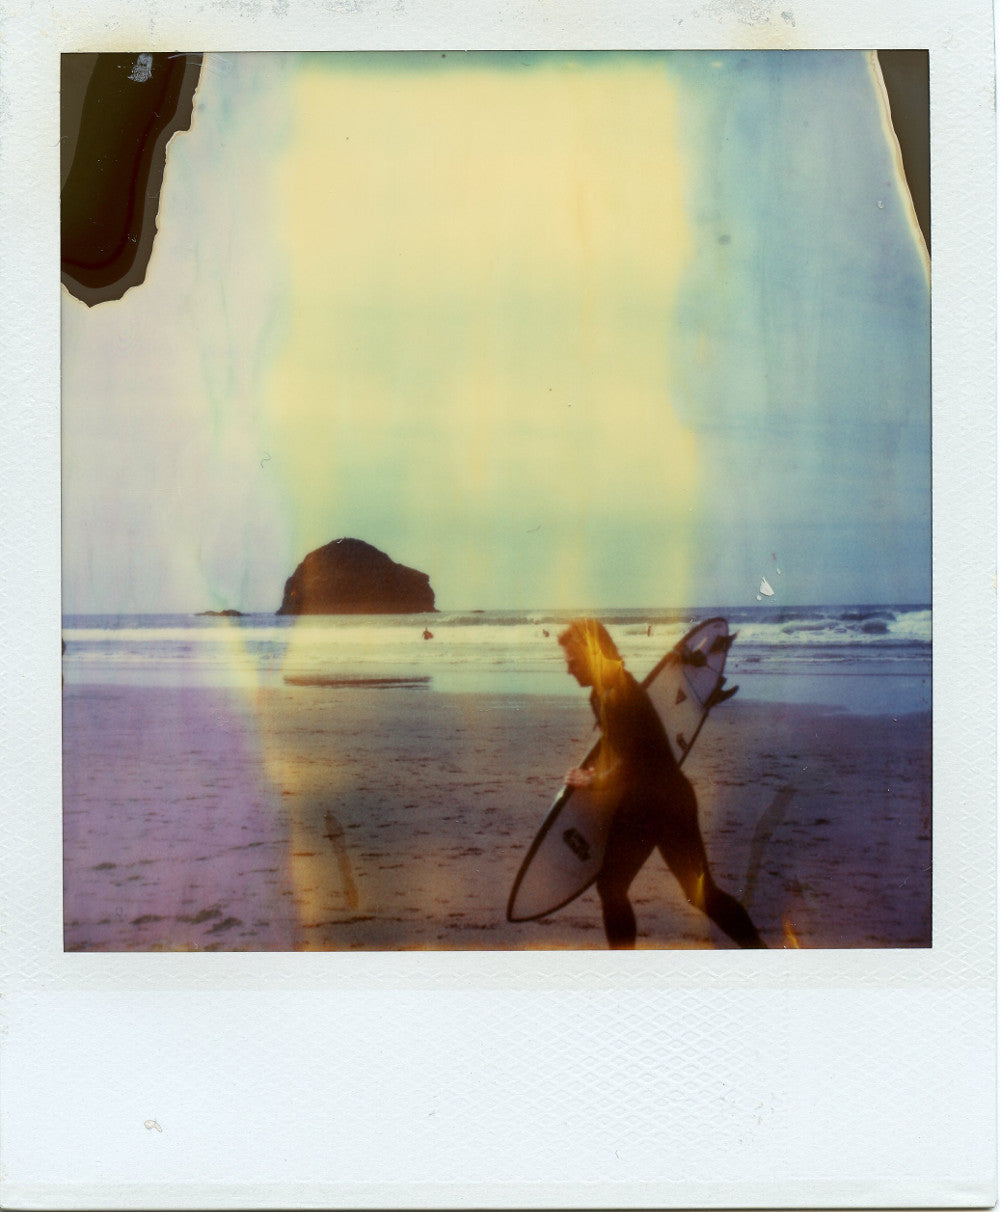 Polaroid image of a surfer at Trebarwith and Gull Rock in the distance